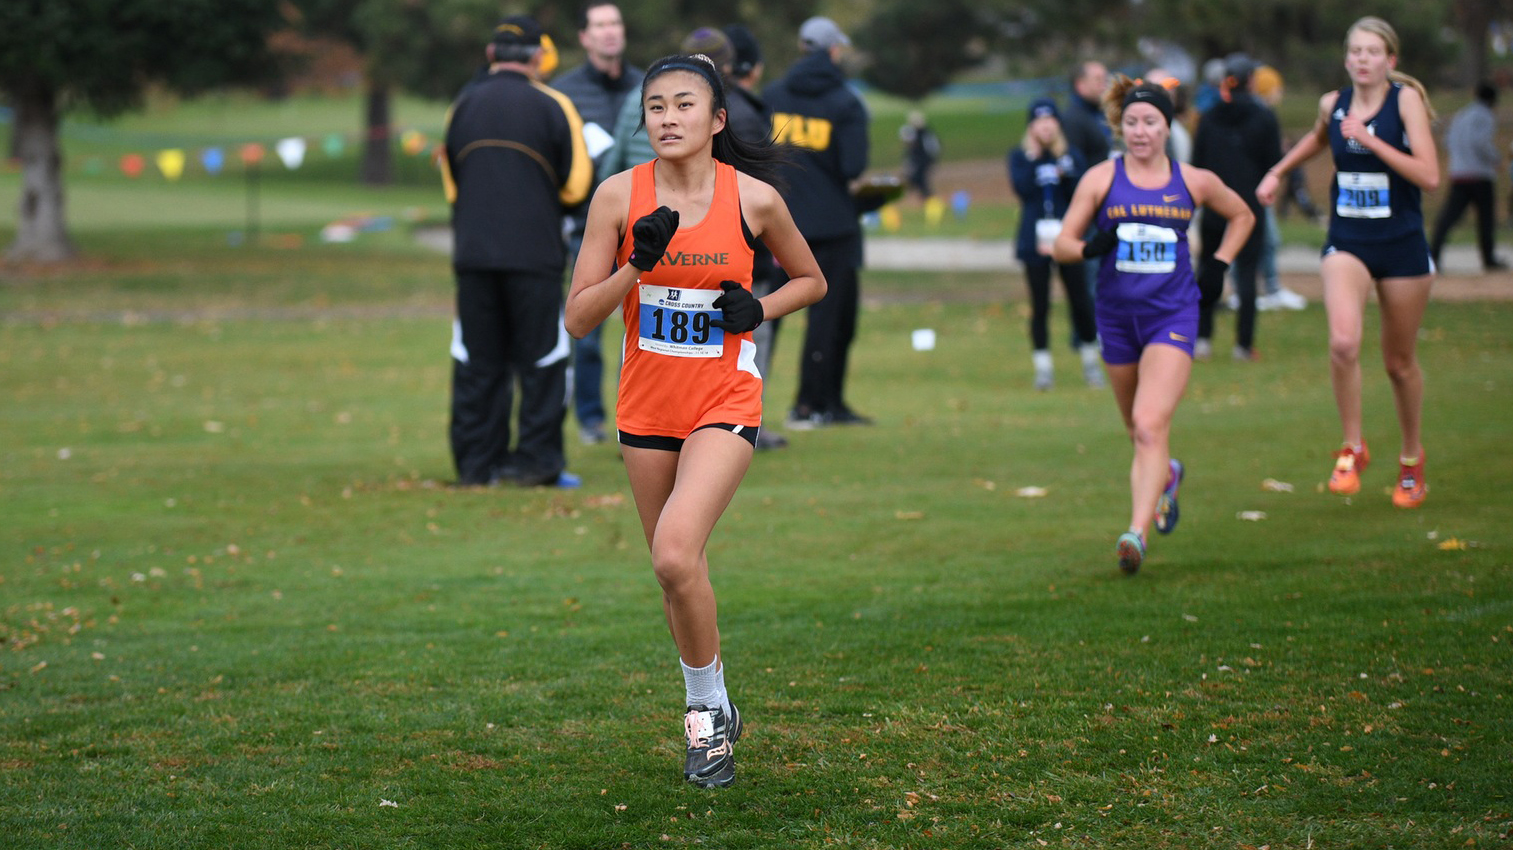 Women's Cross Country Run at UCR